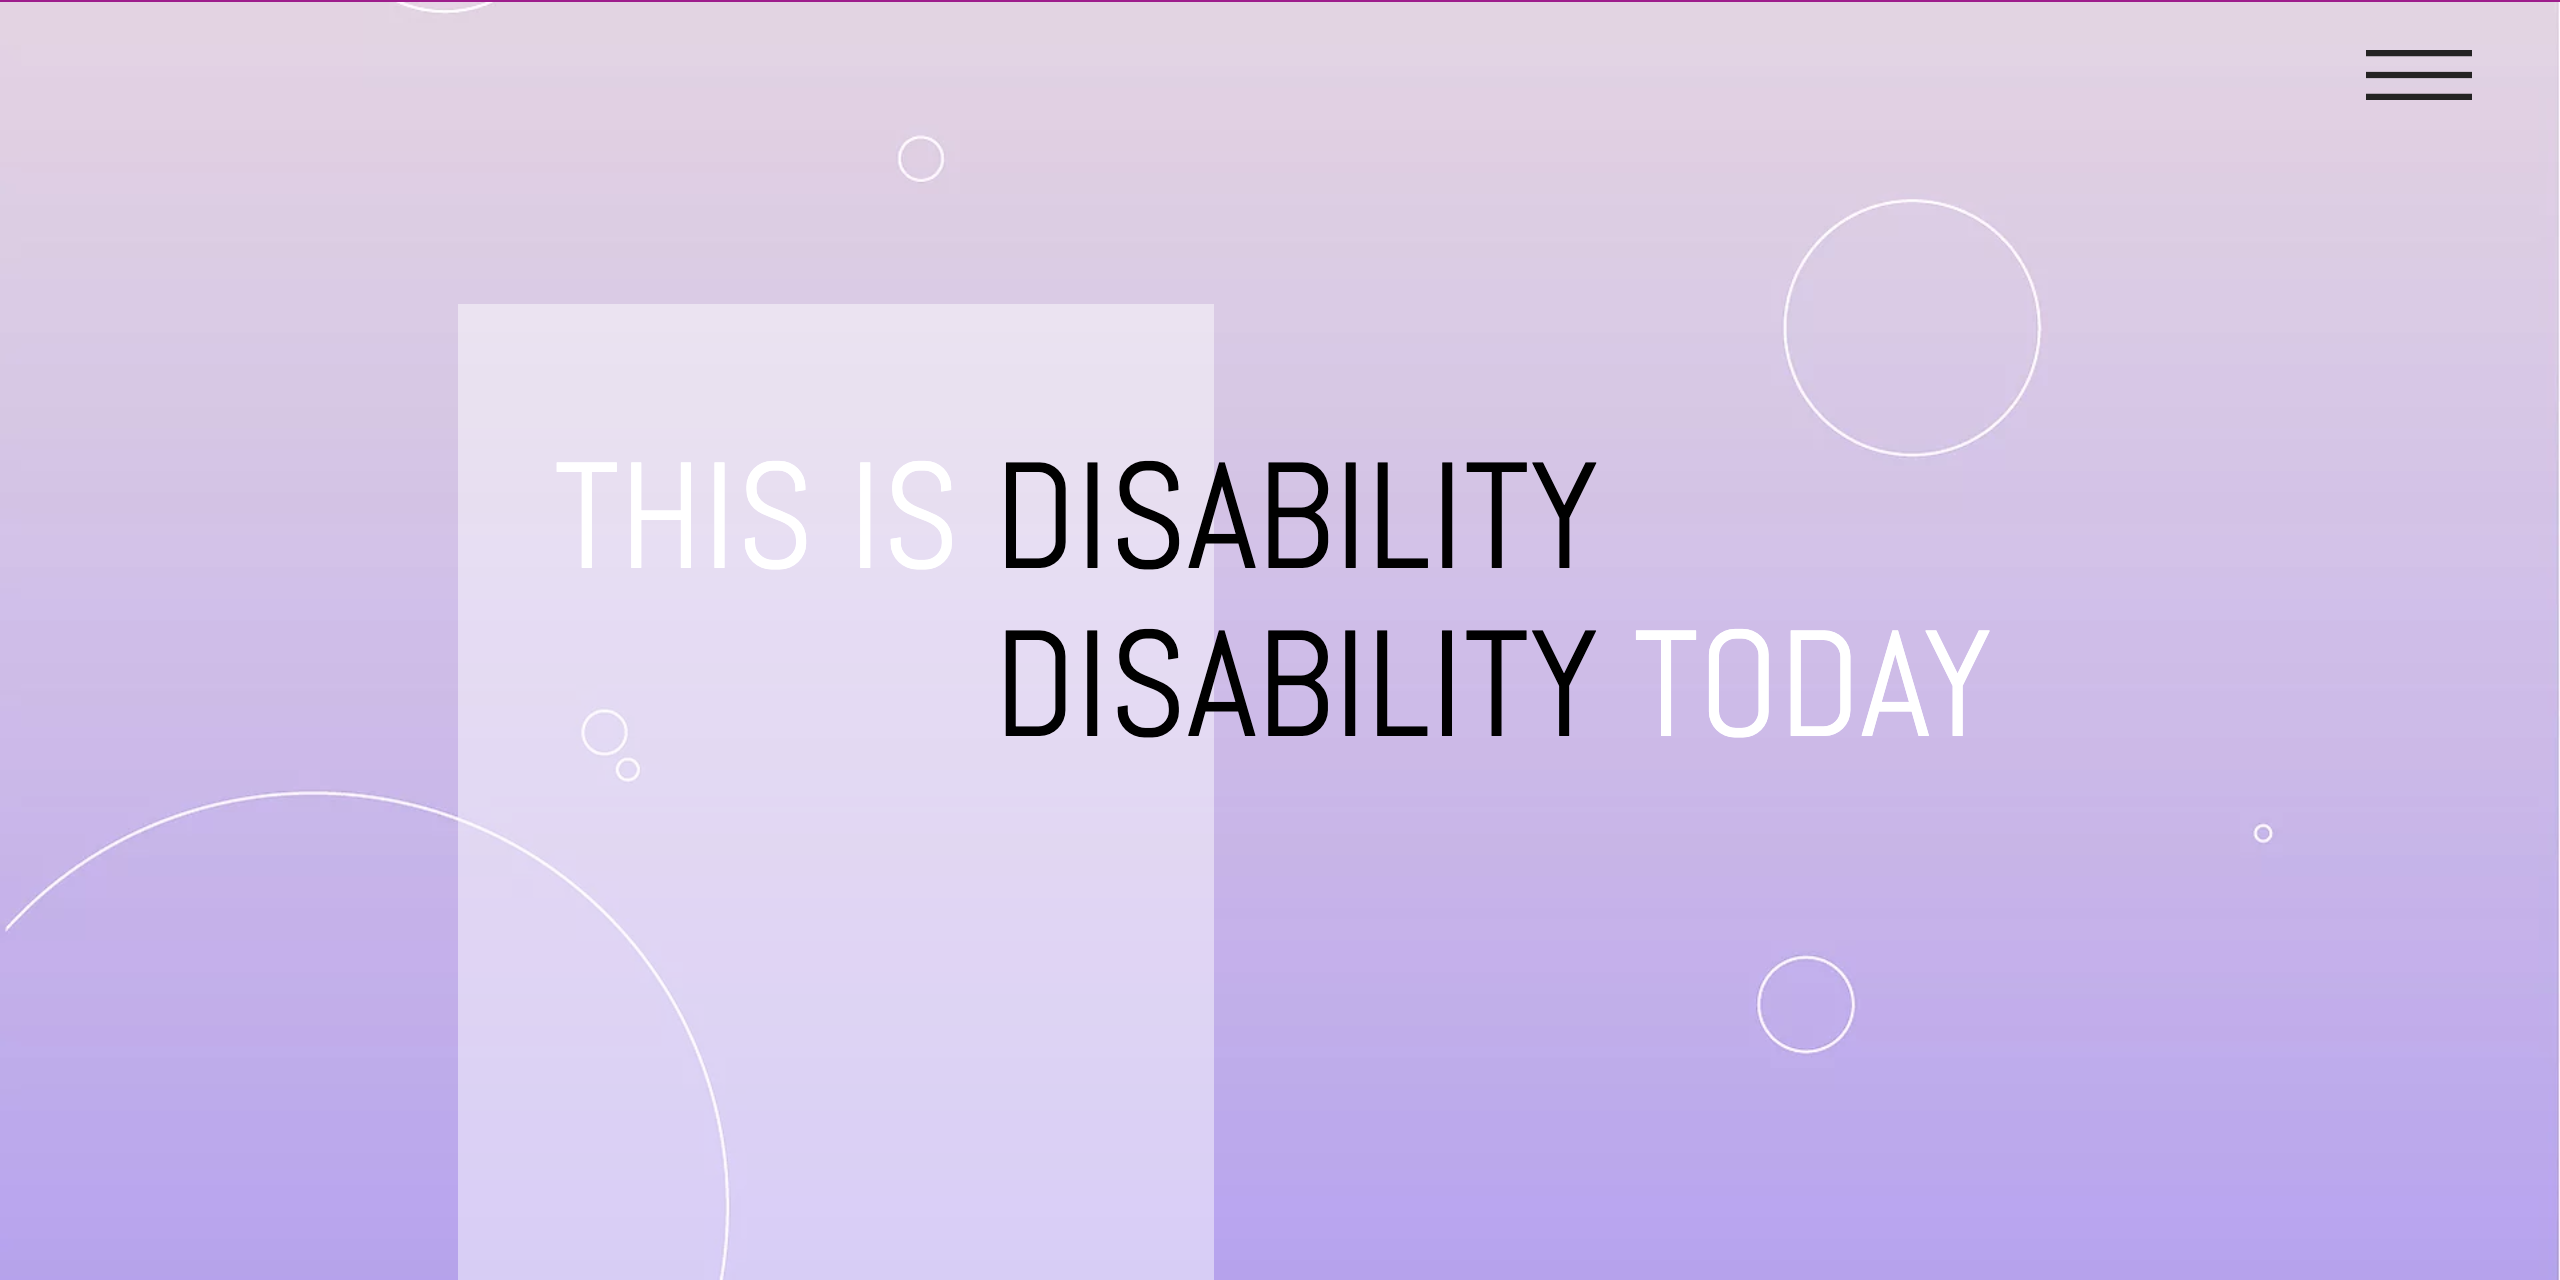 THIS IS DISABILITY TODAY